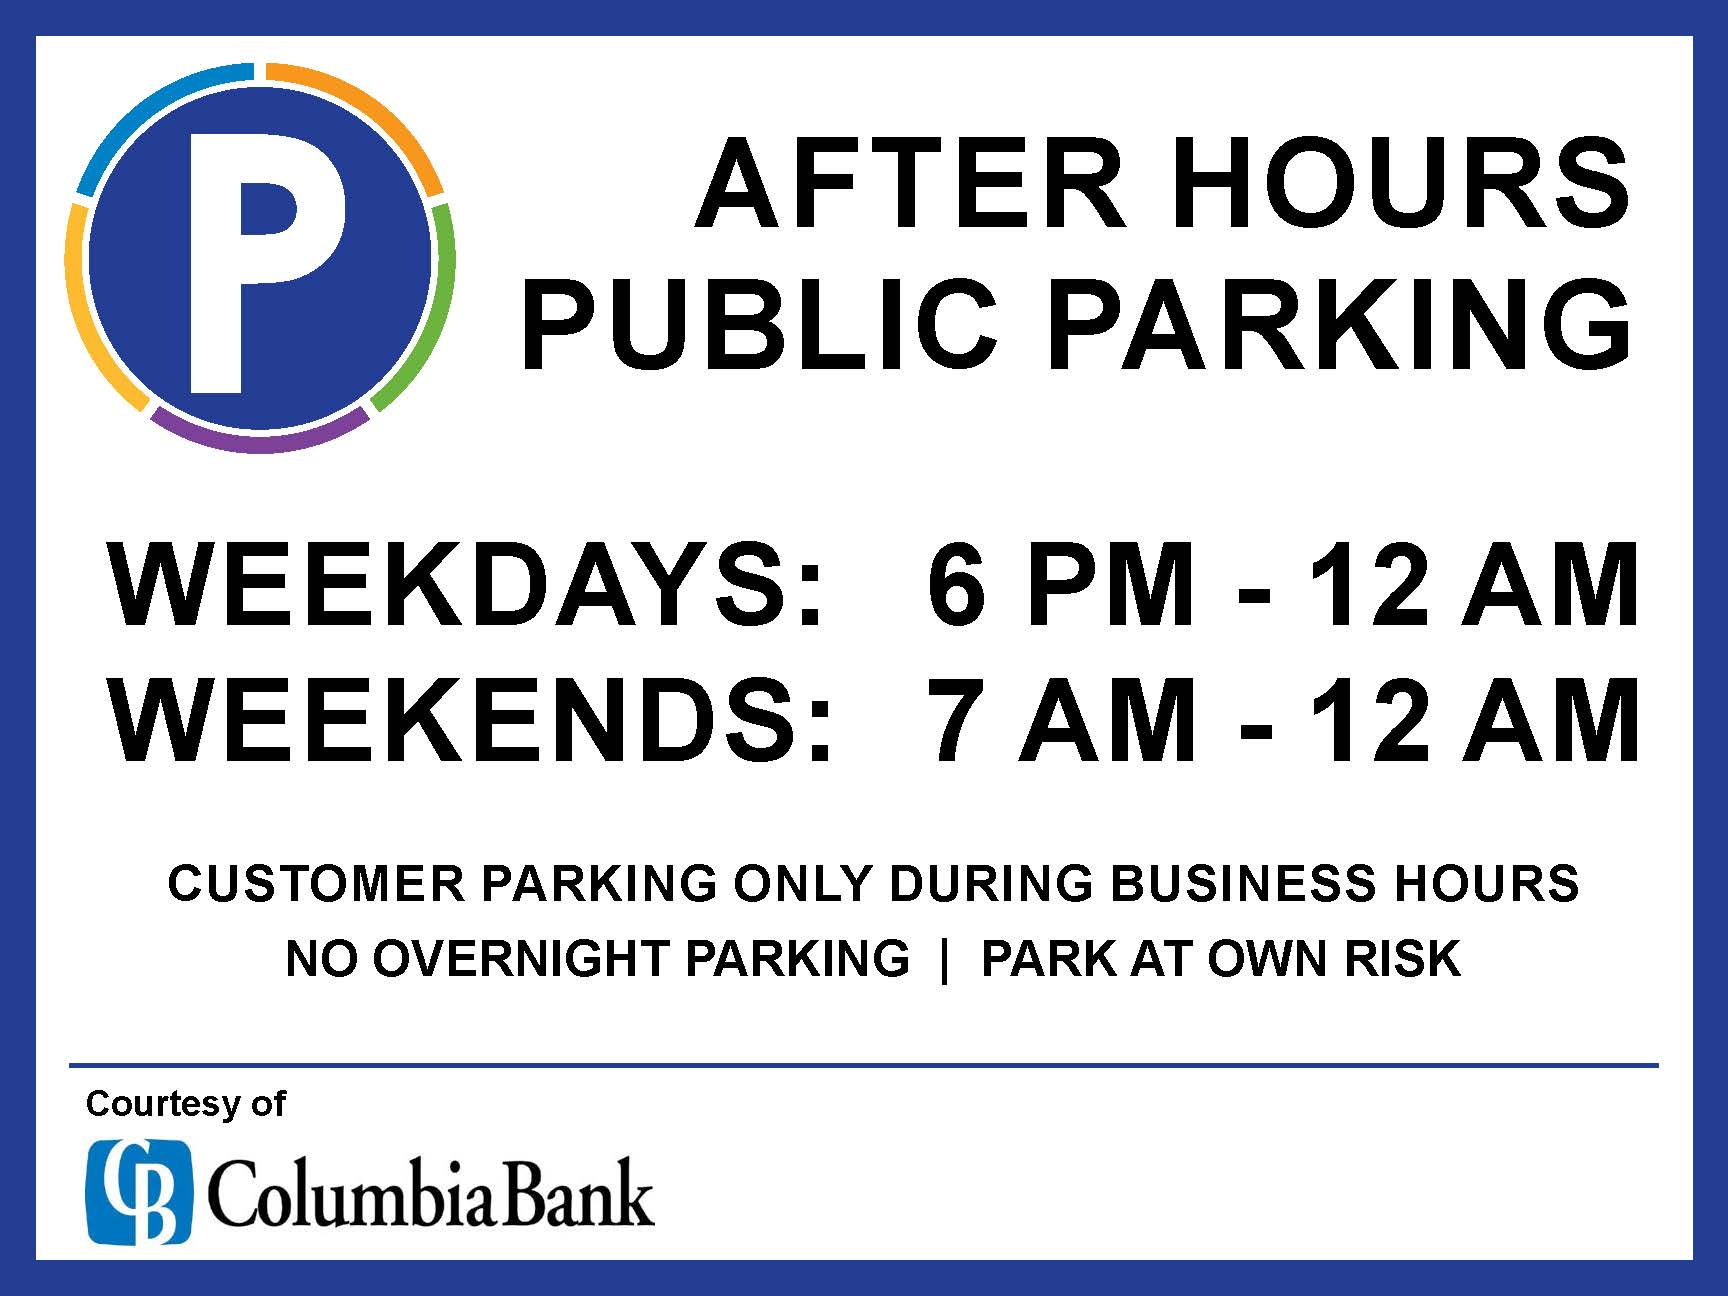 After Hours Sign_Columbia Bank5.jpg